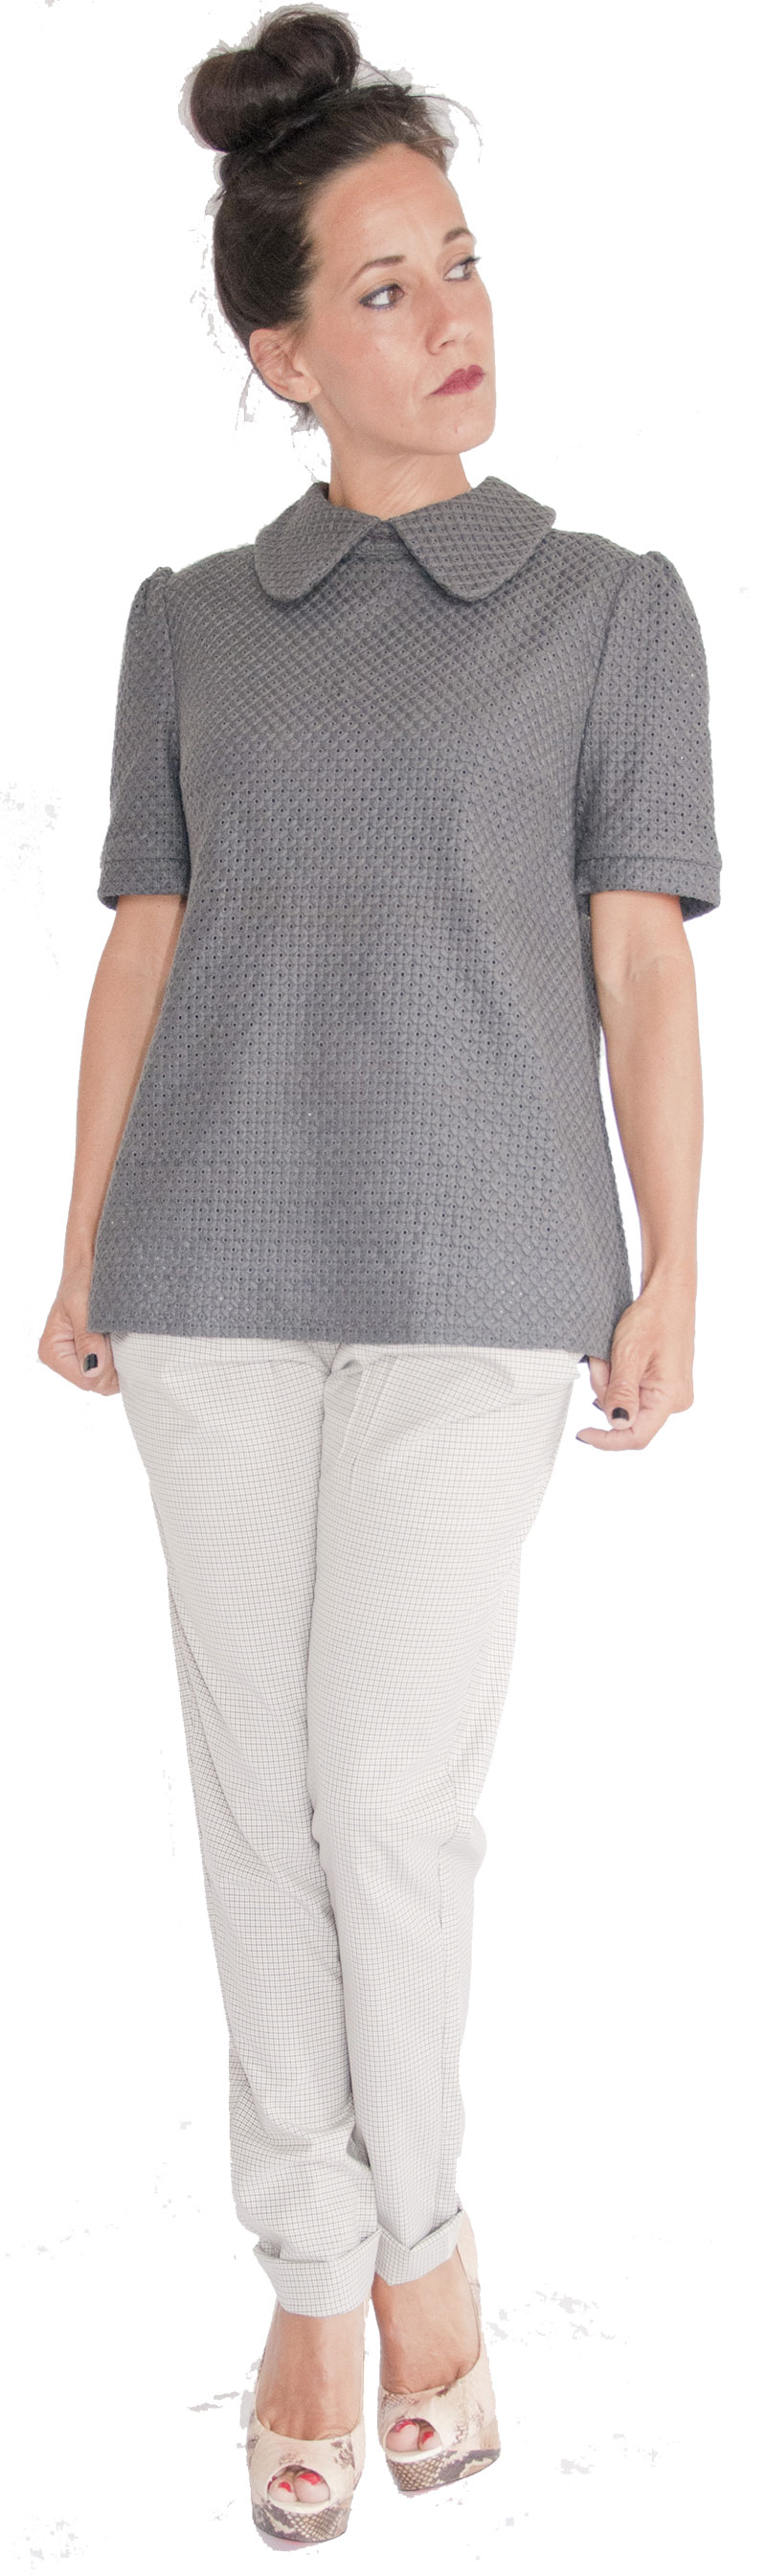 Top Claudine Grey Collection Jolie Madame